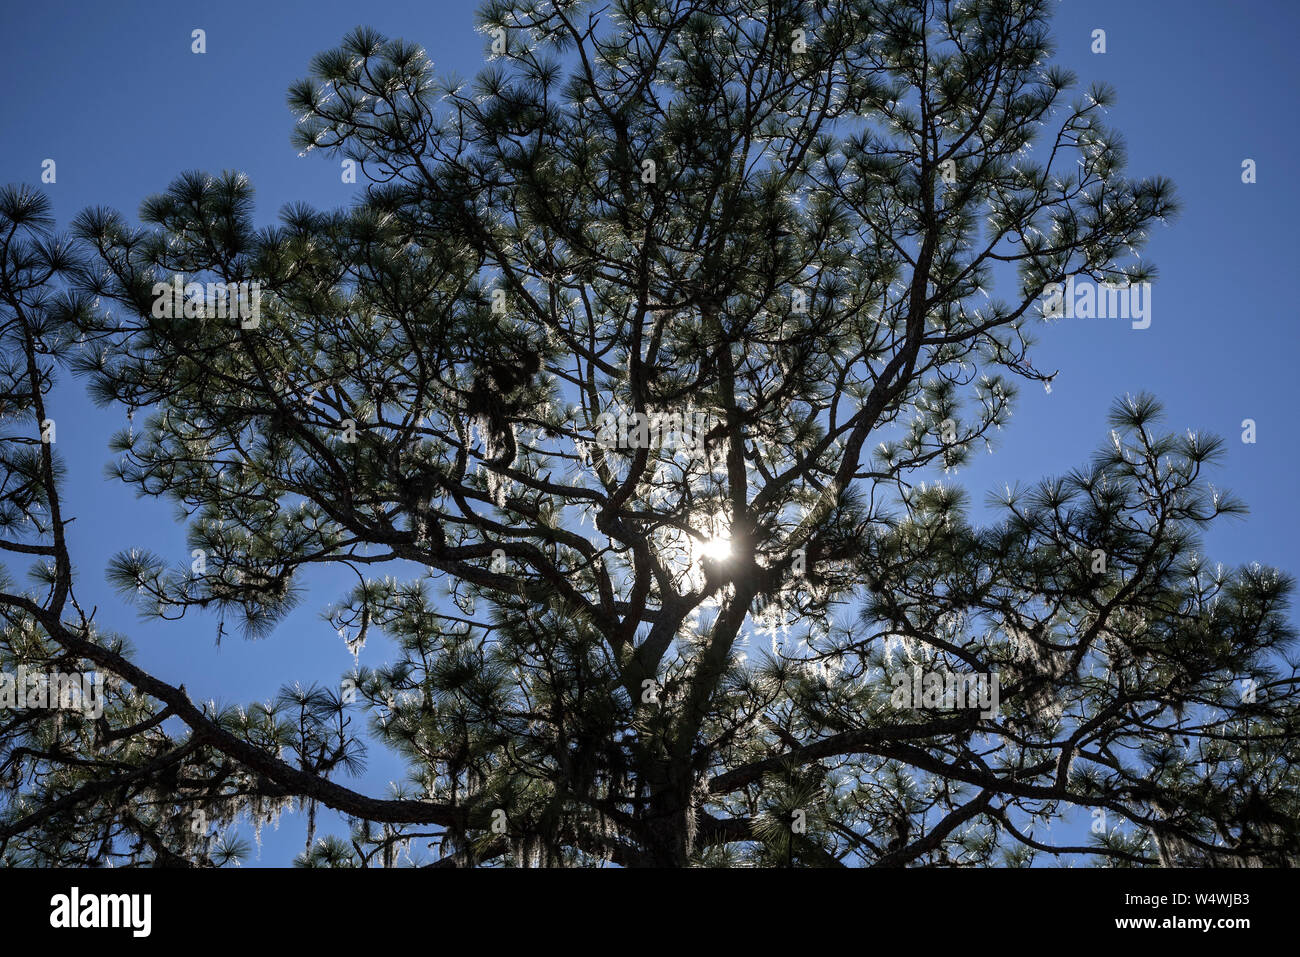 Late afternoon sun shining through a pine tree. Stock Photo